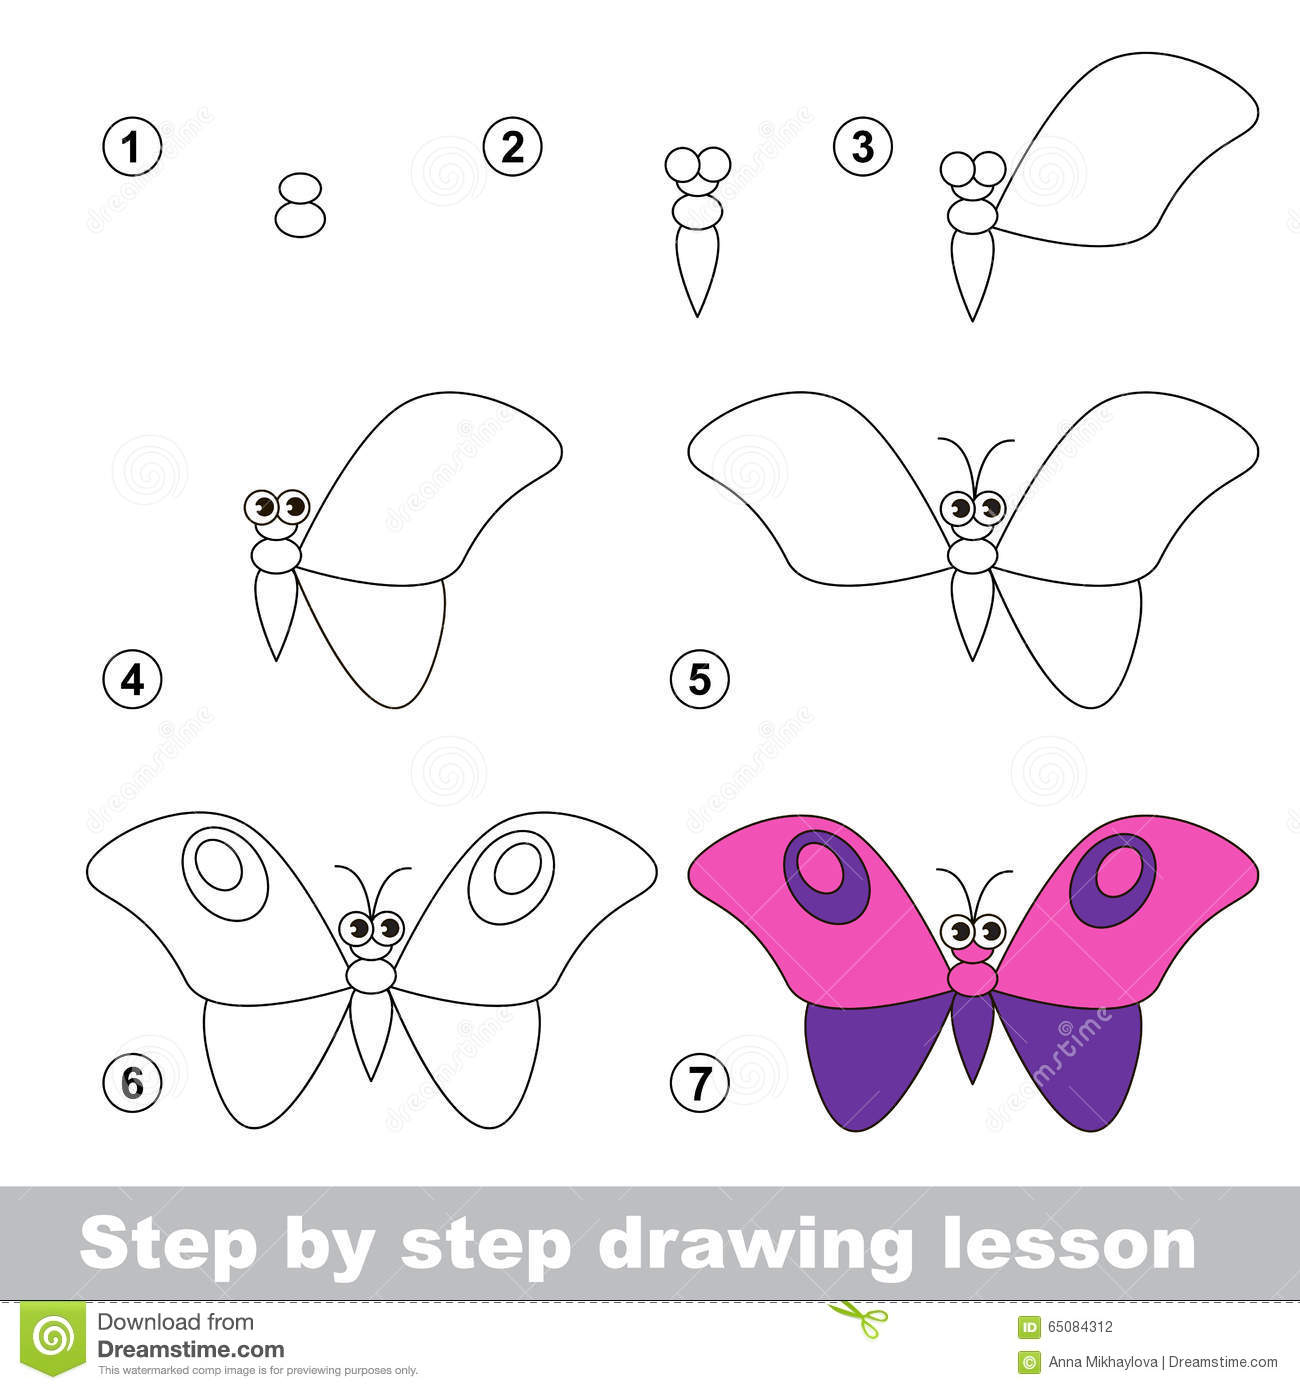 cours de dessin comment dessiner un papillon illustration de vecteur image 65084312. Black Bedroom Furniture Sets. Home Design Ideas